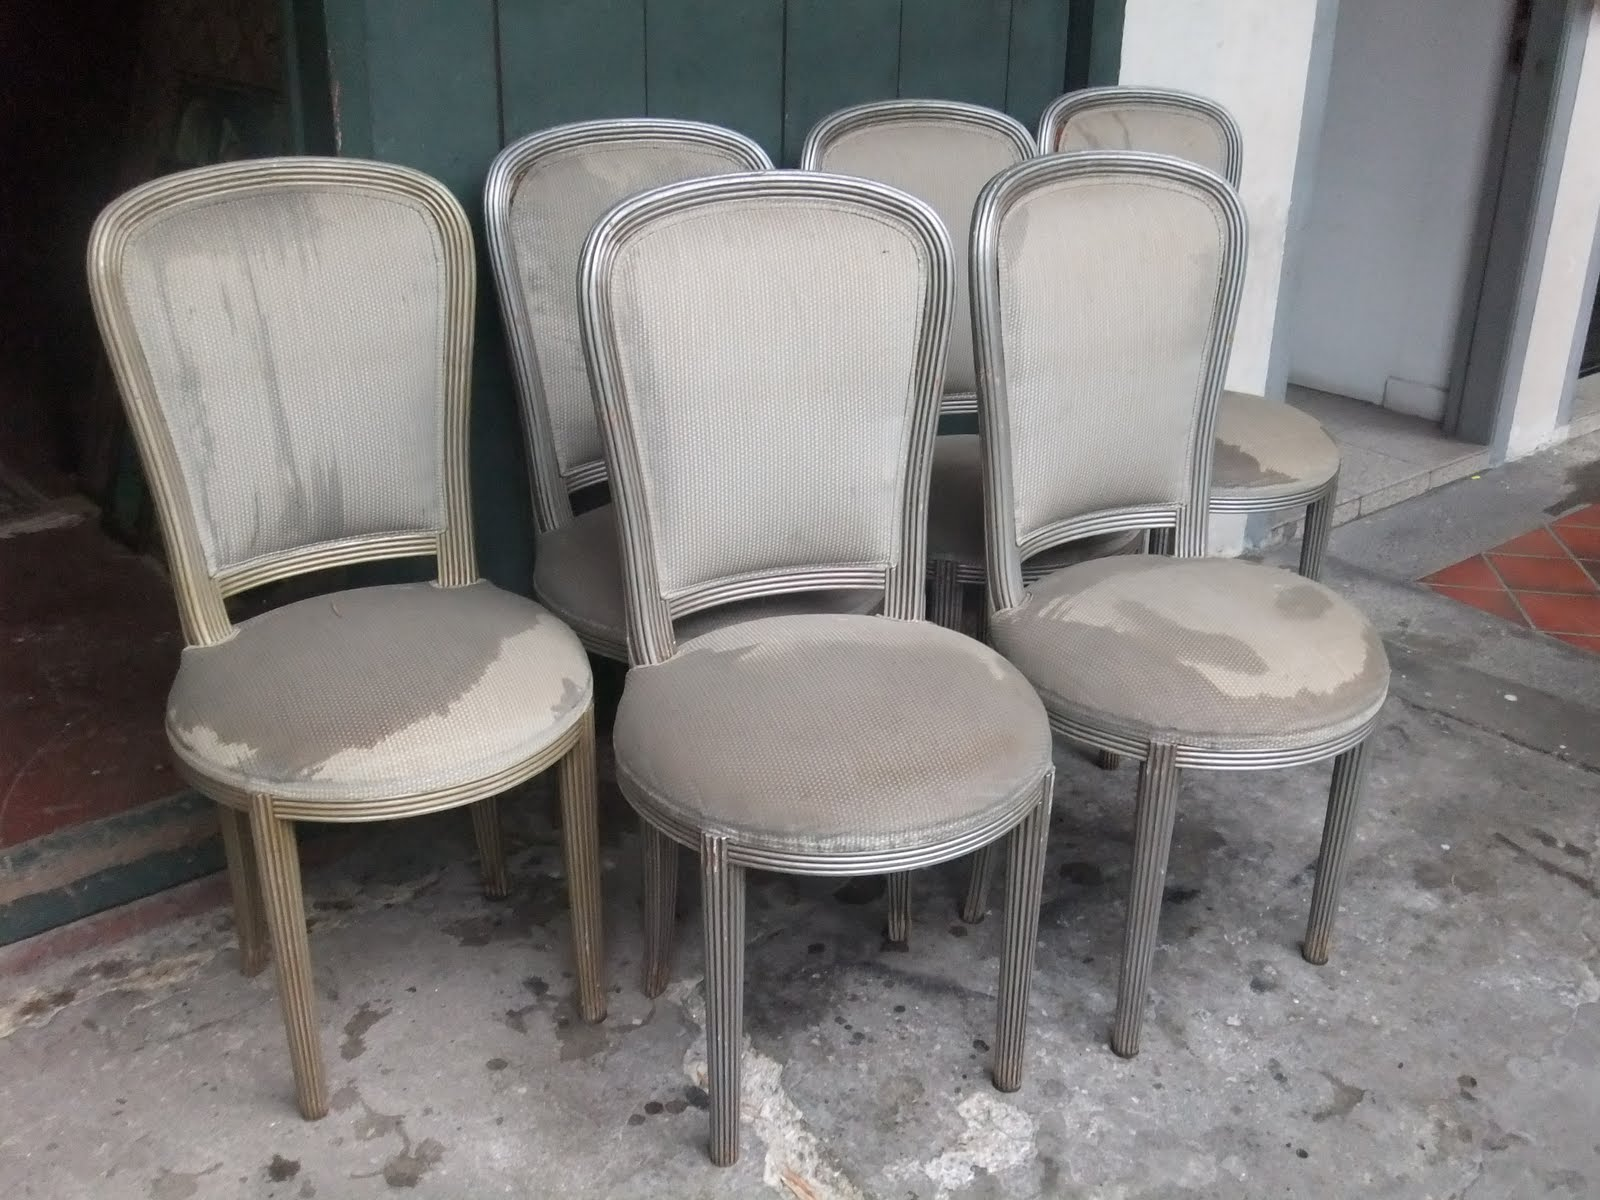 Silver Dining Chairs Furniture Finds The Emergence Of Similar Styles Of